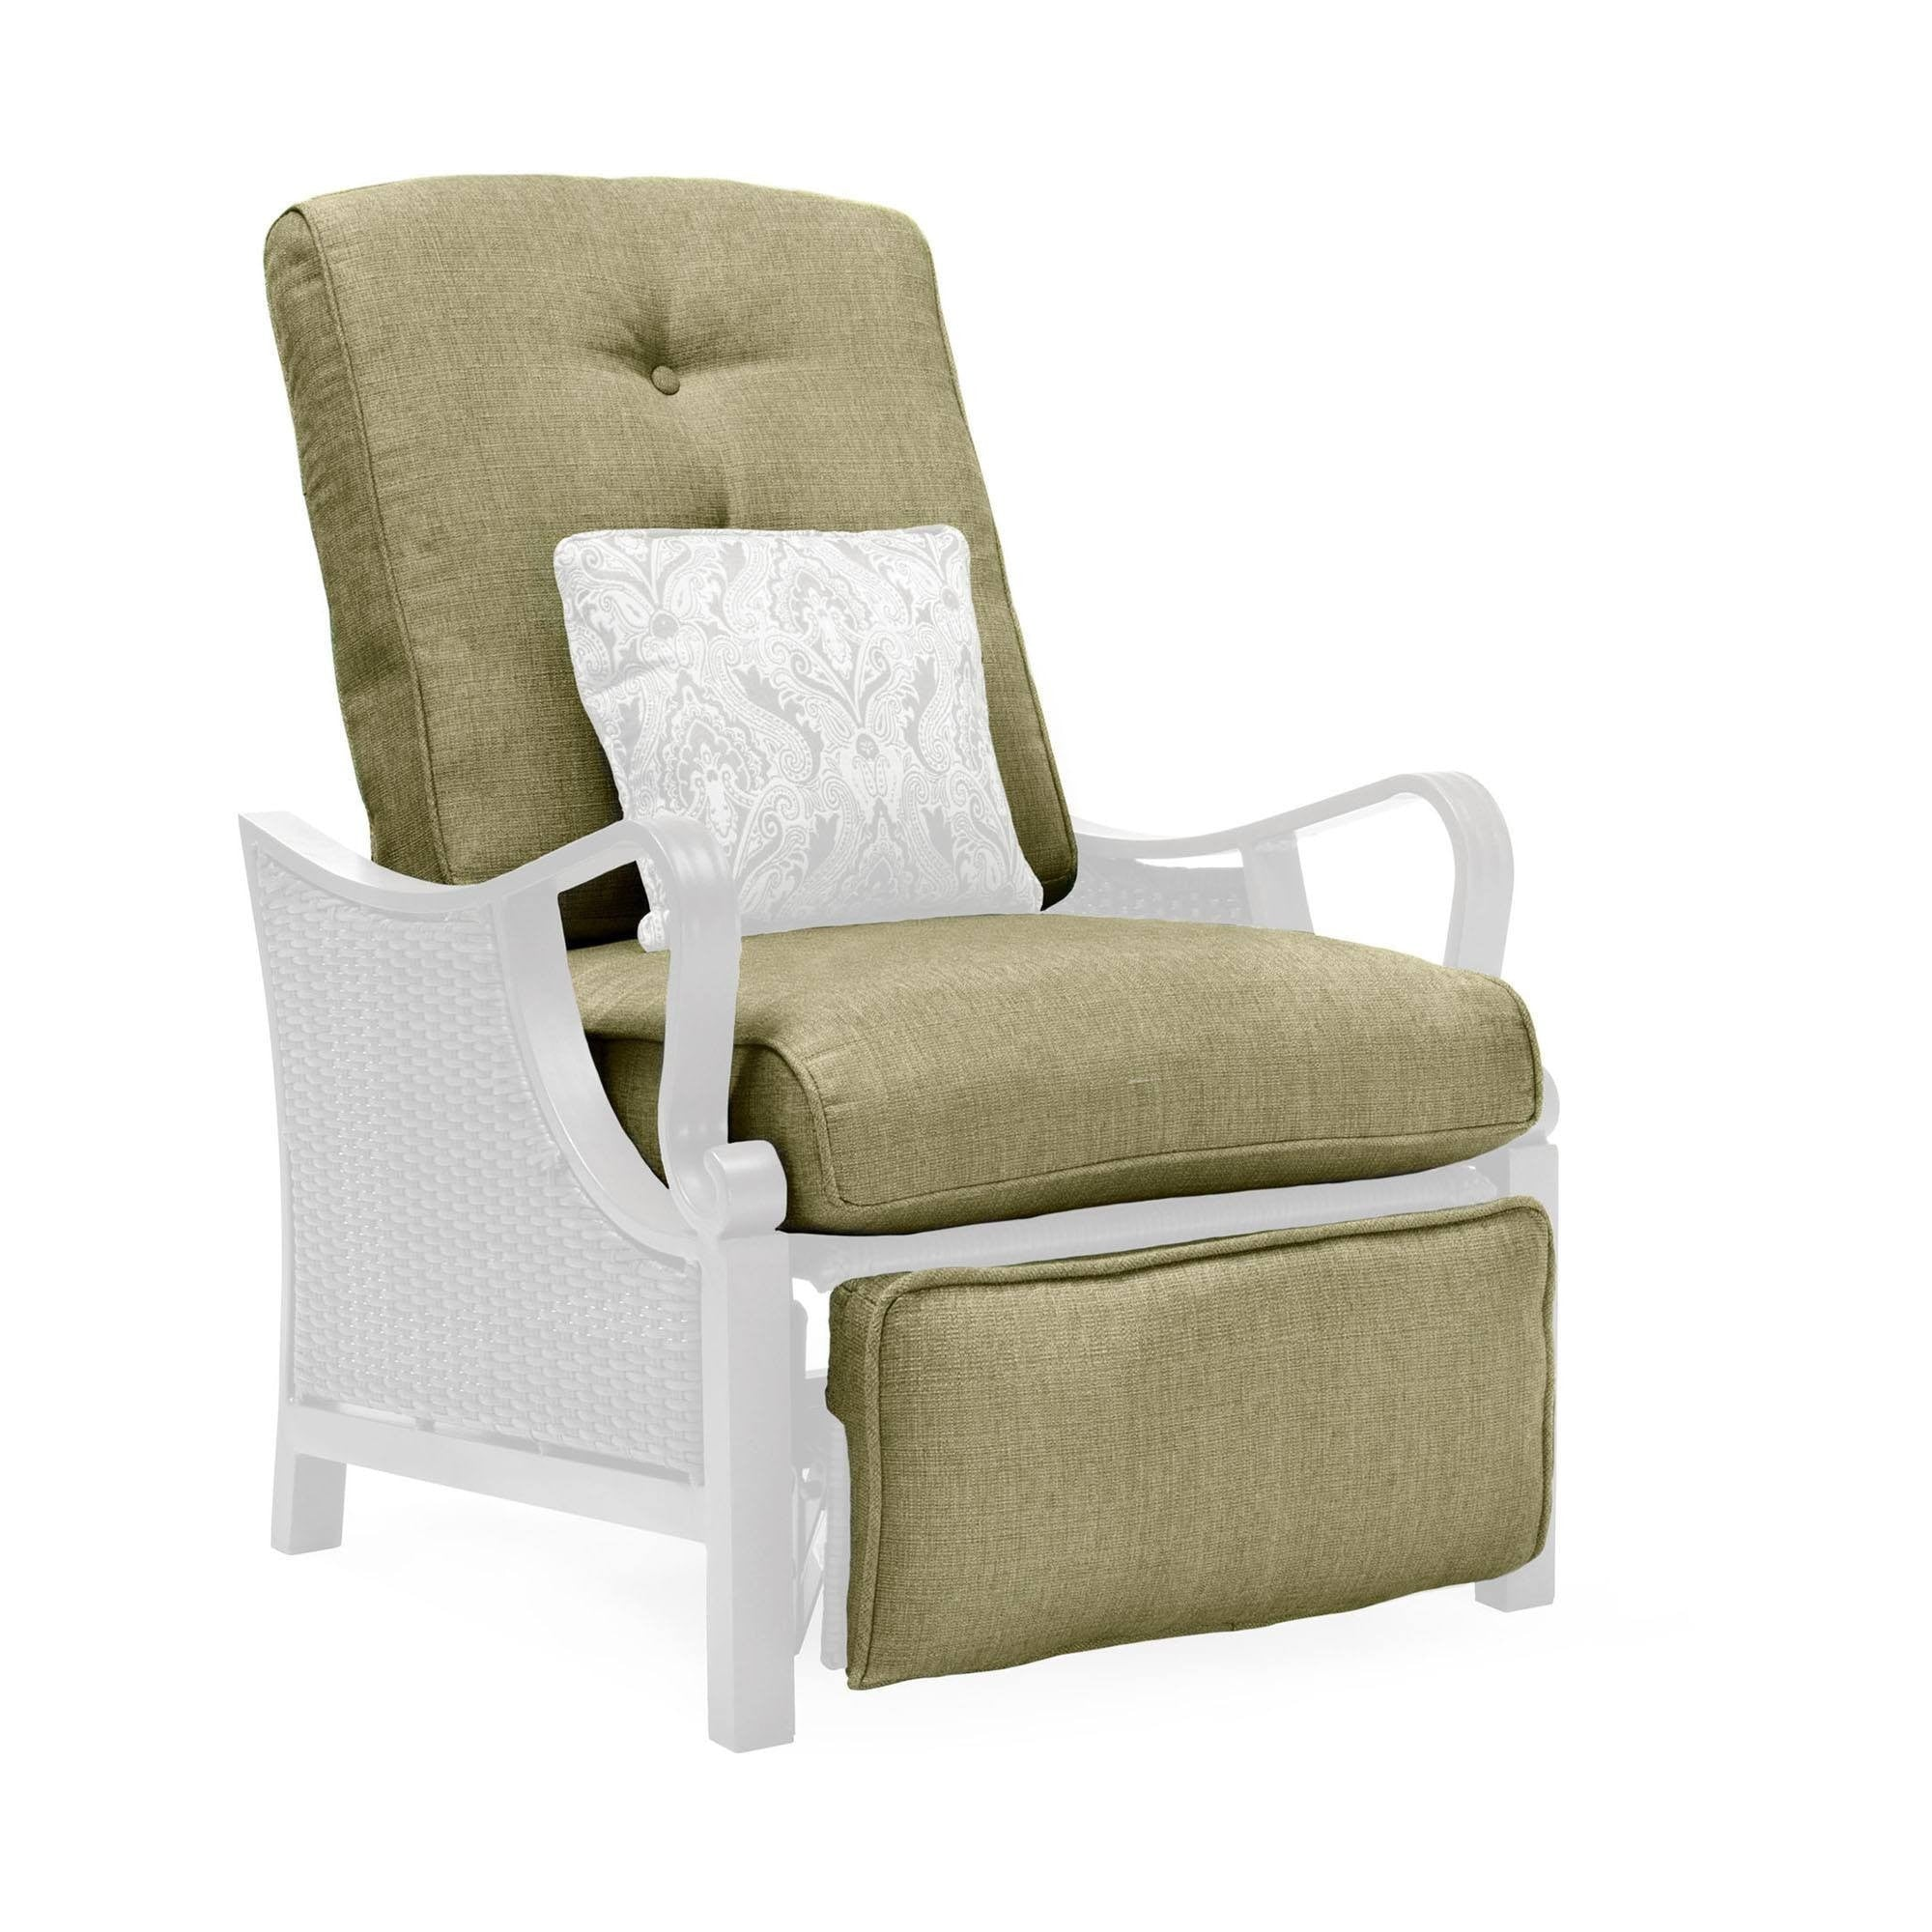 Replacement Cushions LaZBoy Outdoor